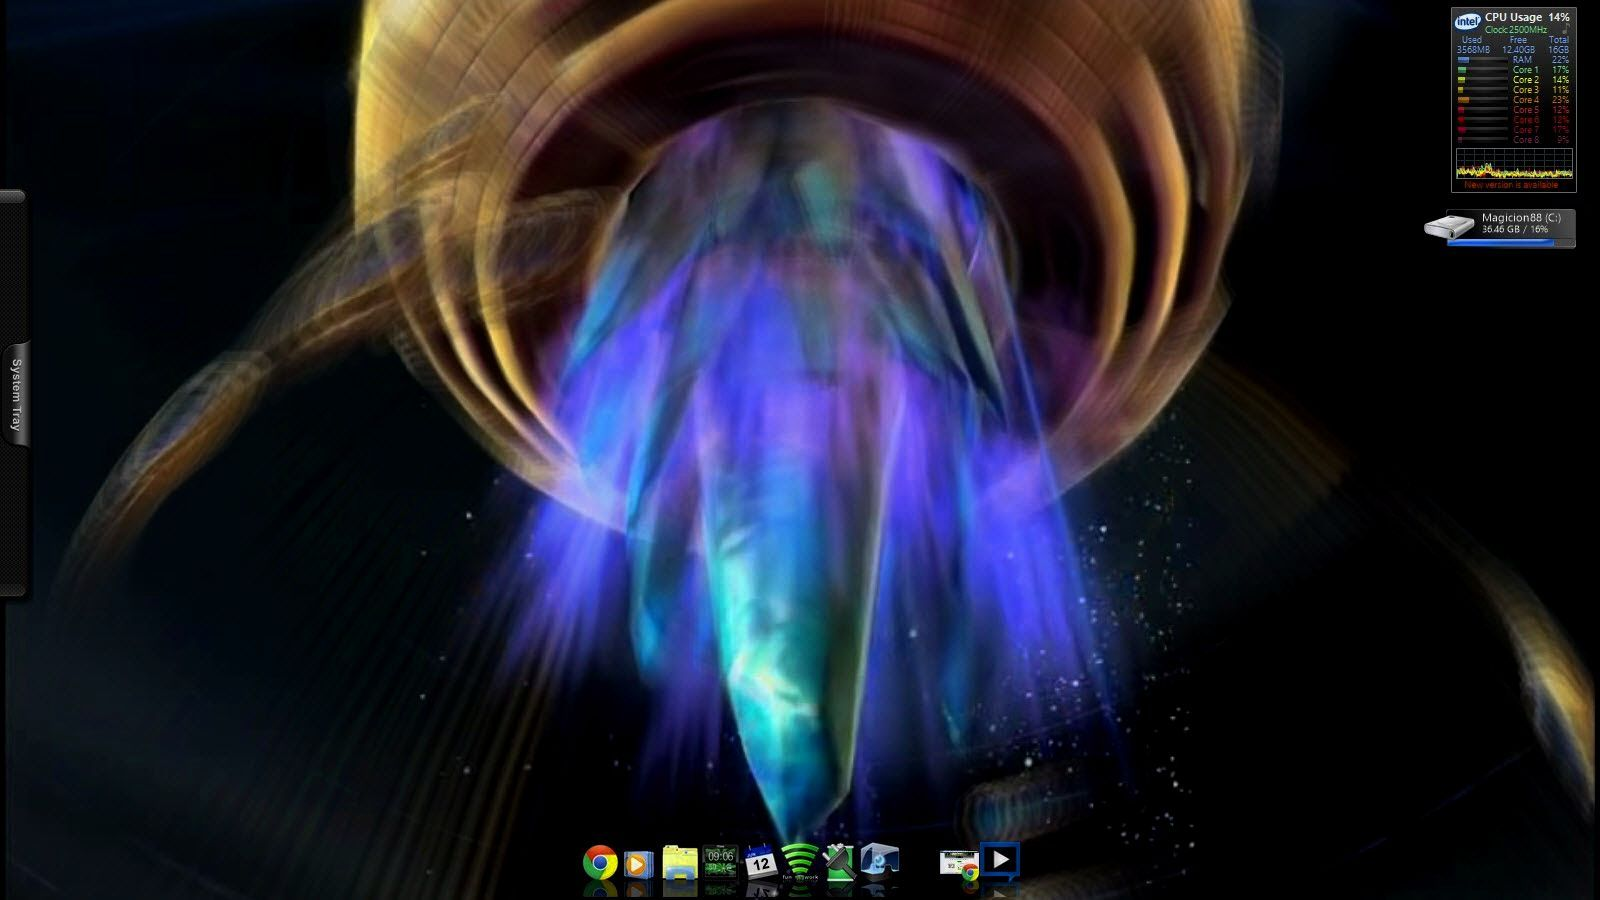 live wallpapers for pc windows xp free download 1440 900 high